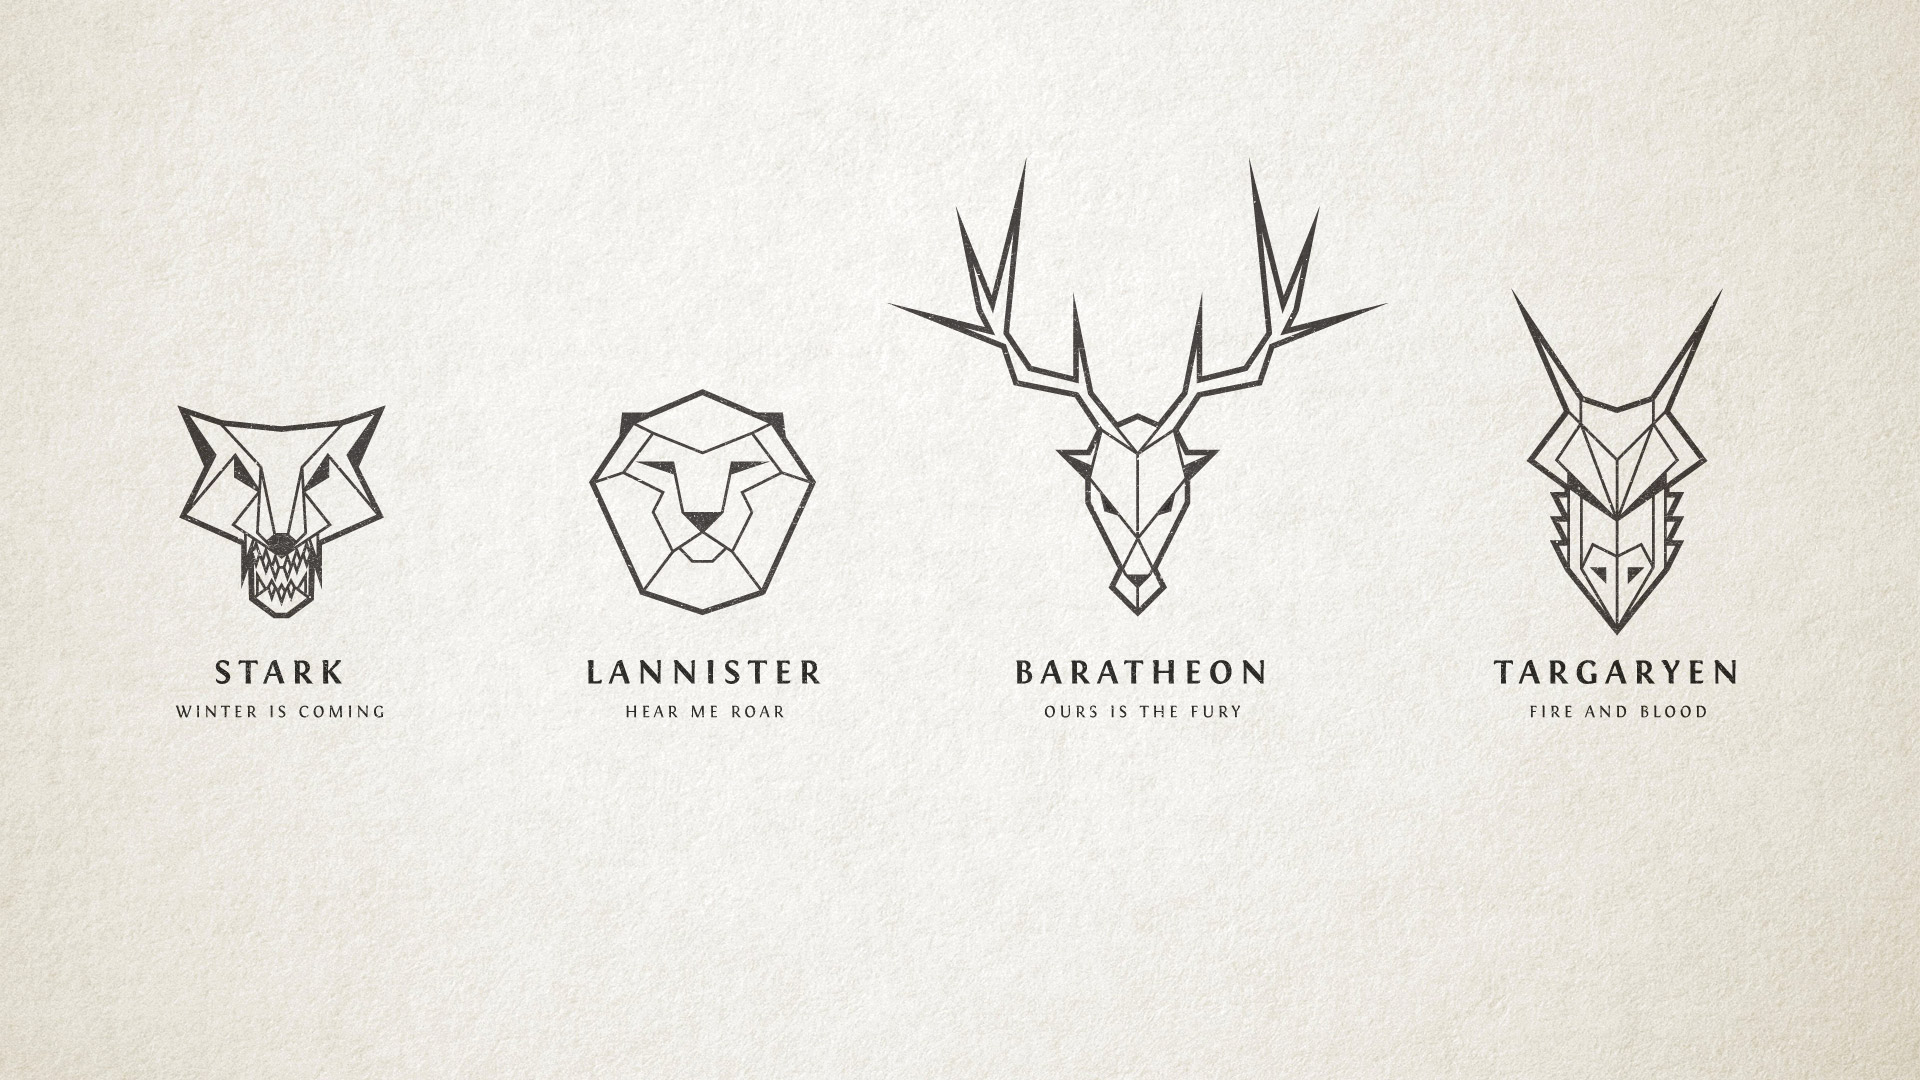 How To Make Straight Line Art : Game of thrones inspired line art logos in illustrator